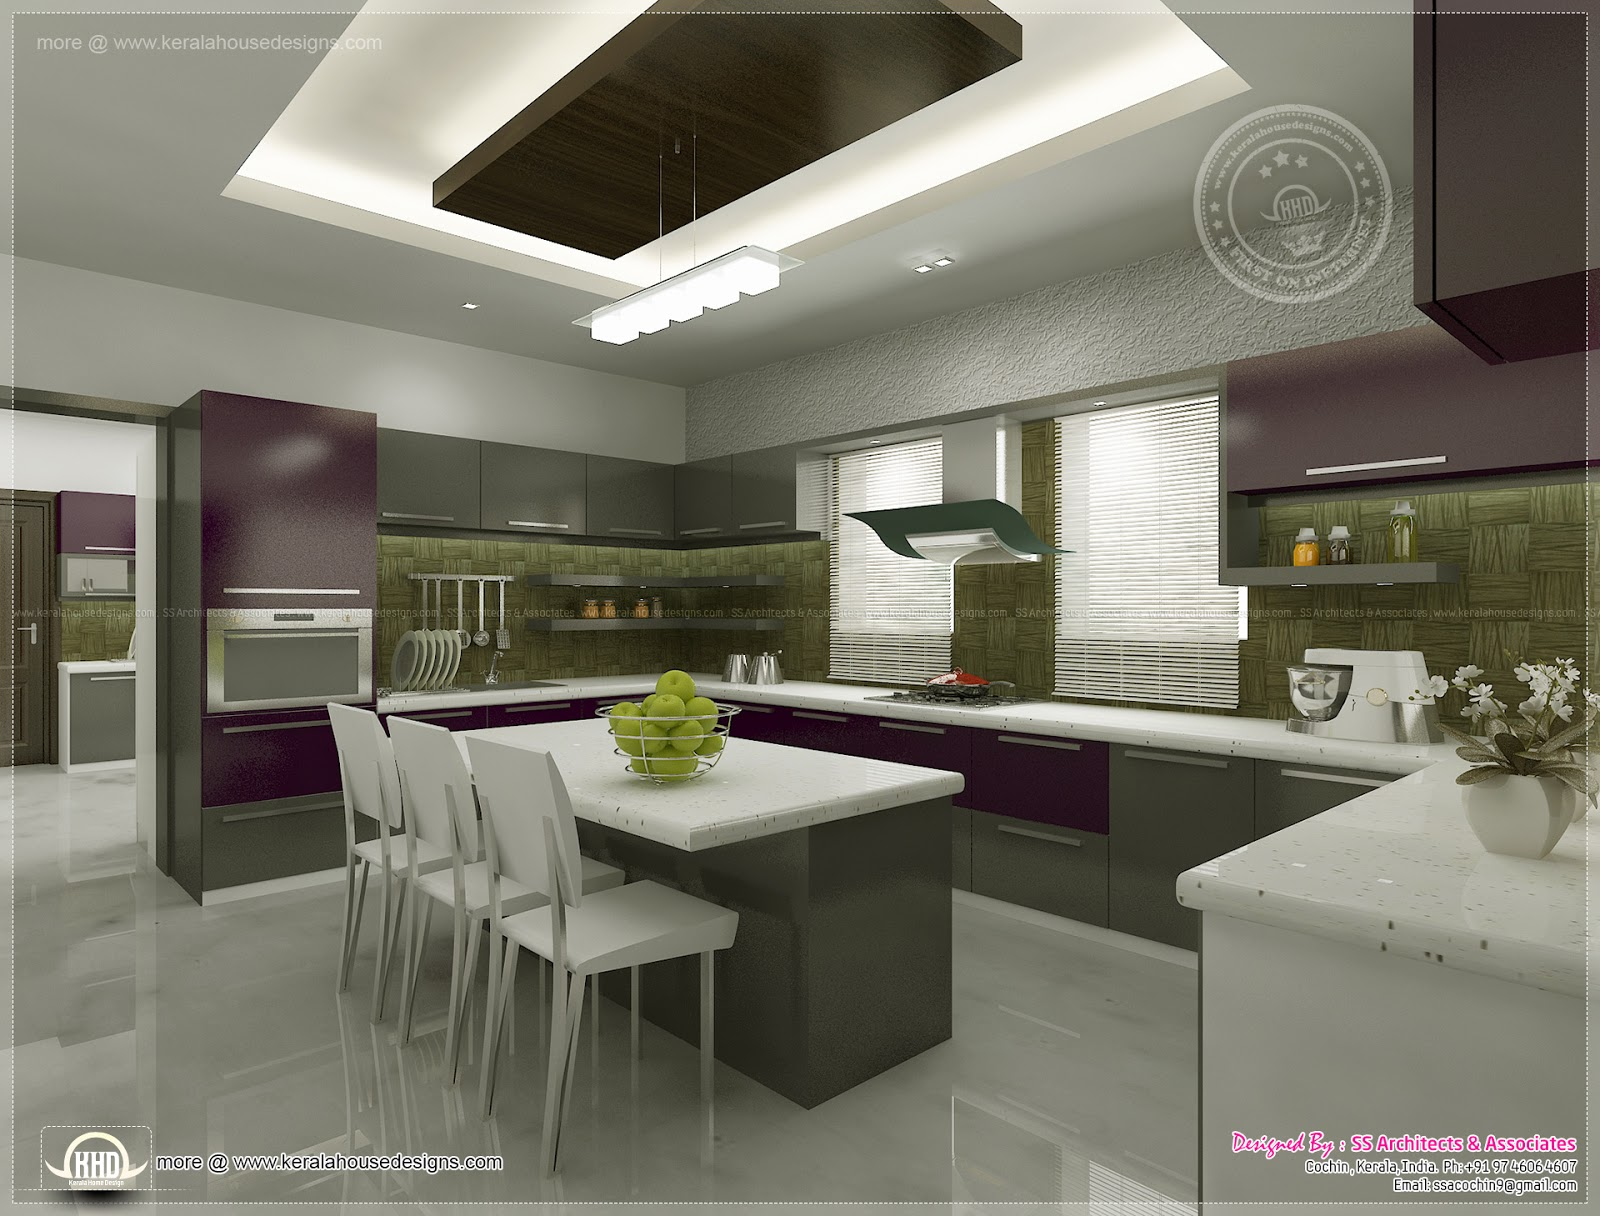 Kitchen interior views by ss architects cochin kerala for Kitchen interior ideas